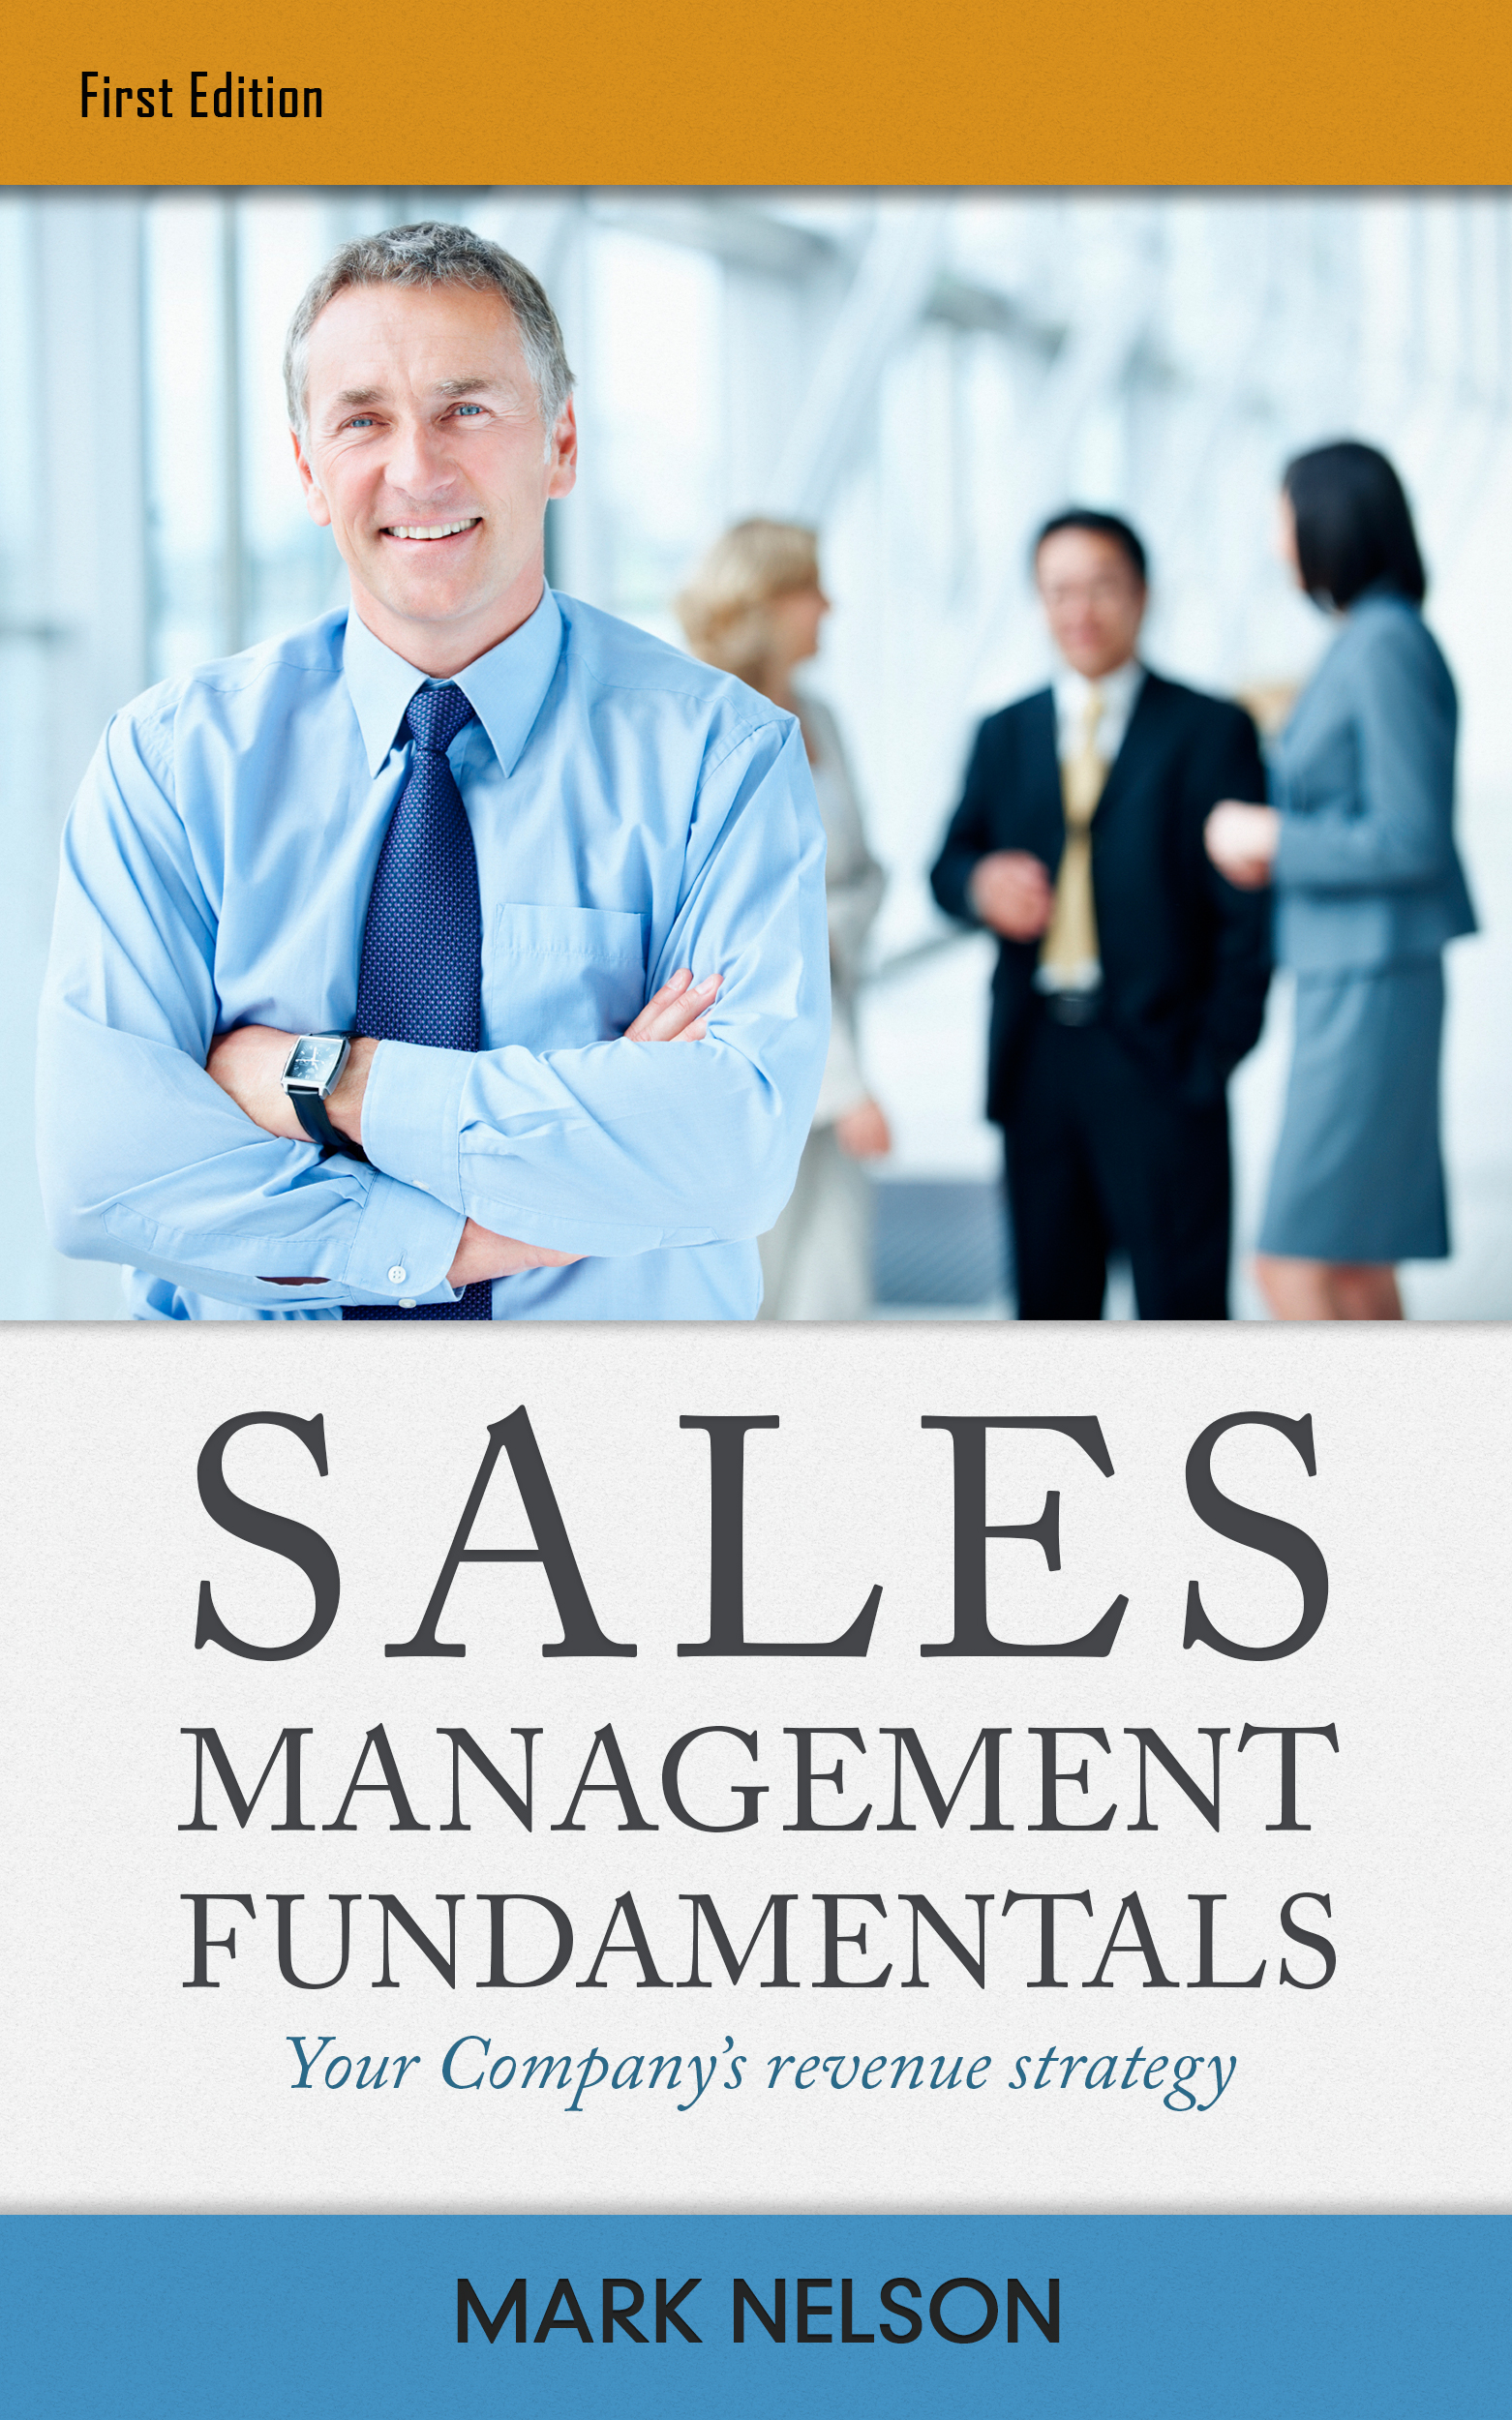 management and marks Management accountant in part qualified, full time, leisure, management accountant with marks sattin apply today.